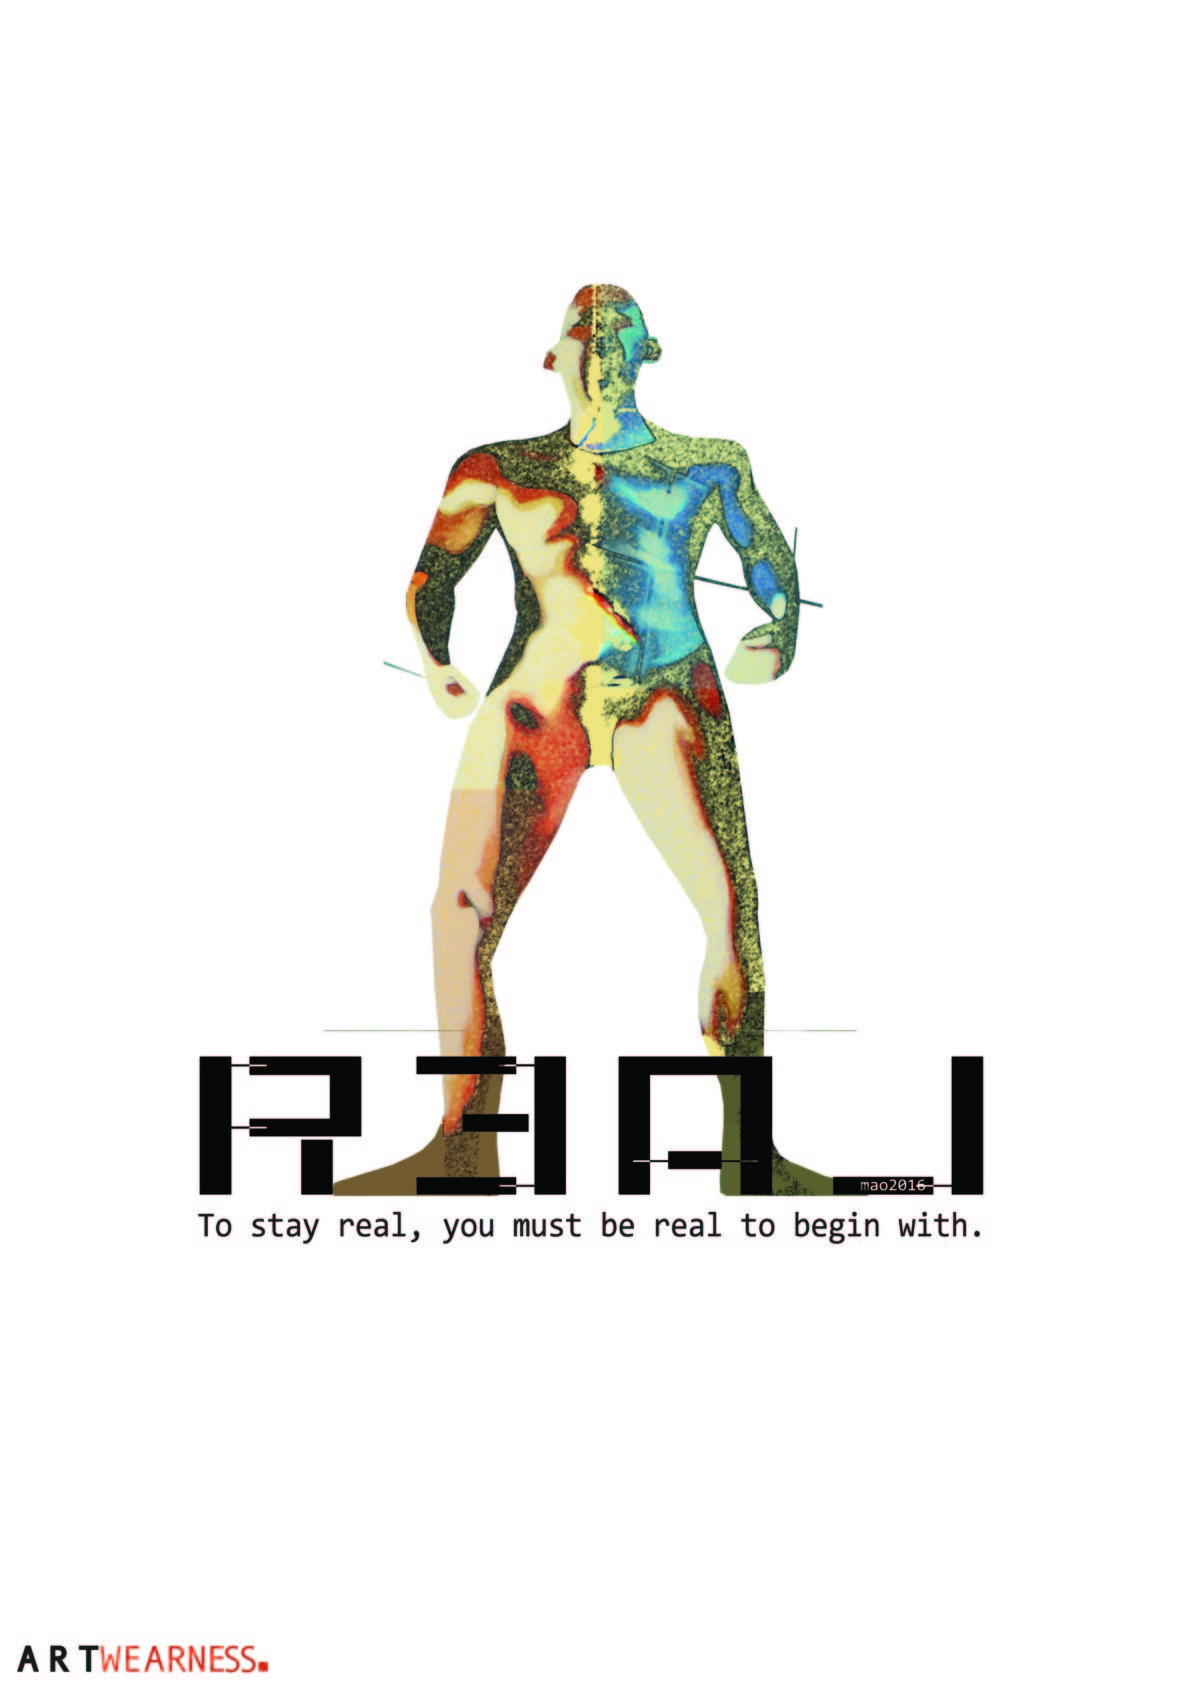 New design 'Real'